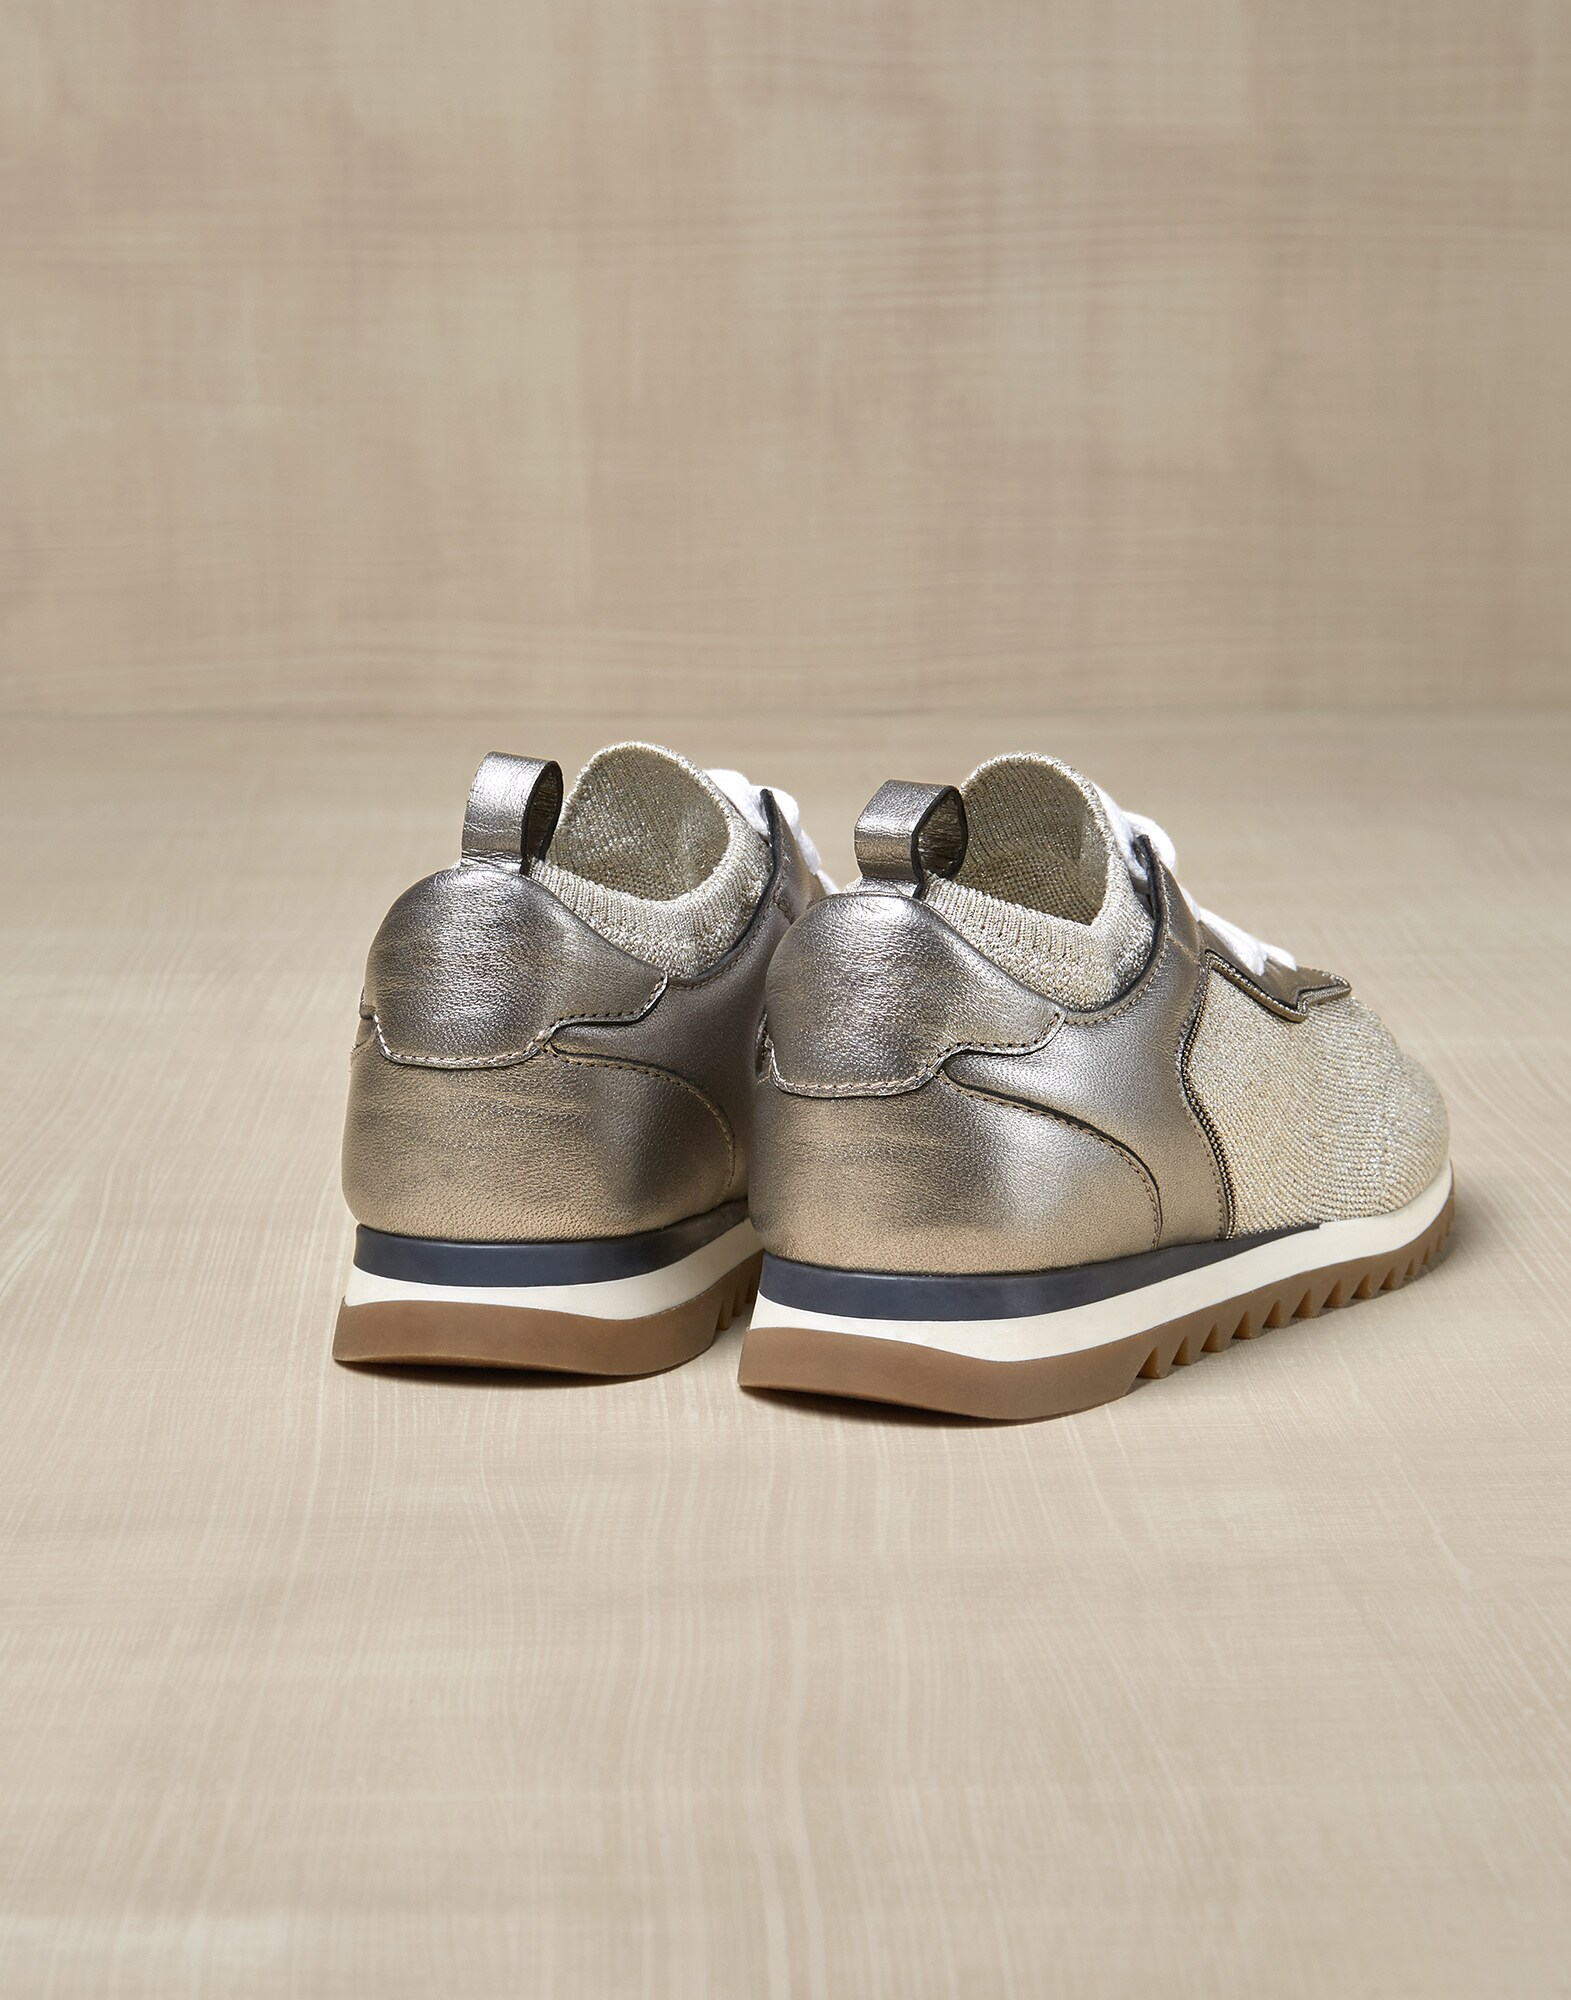 Sneakers Beige Girl 2 - Brunello Cucinelli